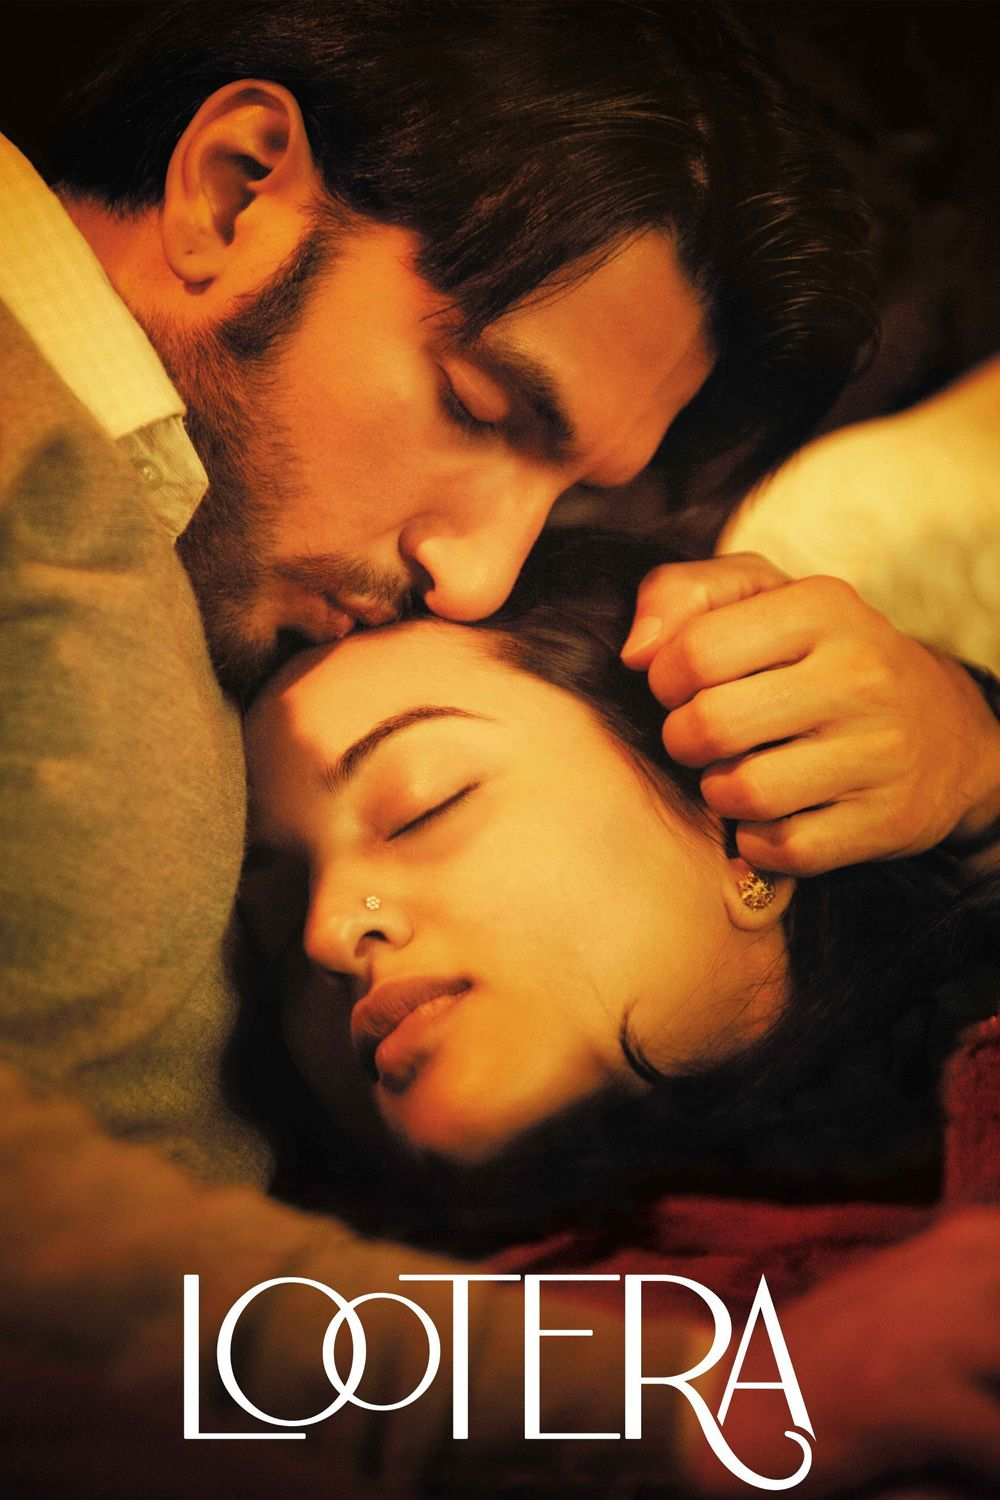 Lootera (2013) FULL MOVIE. Click image to watch this movie